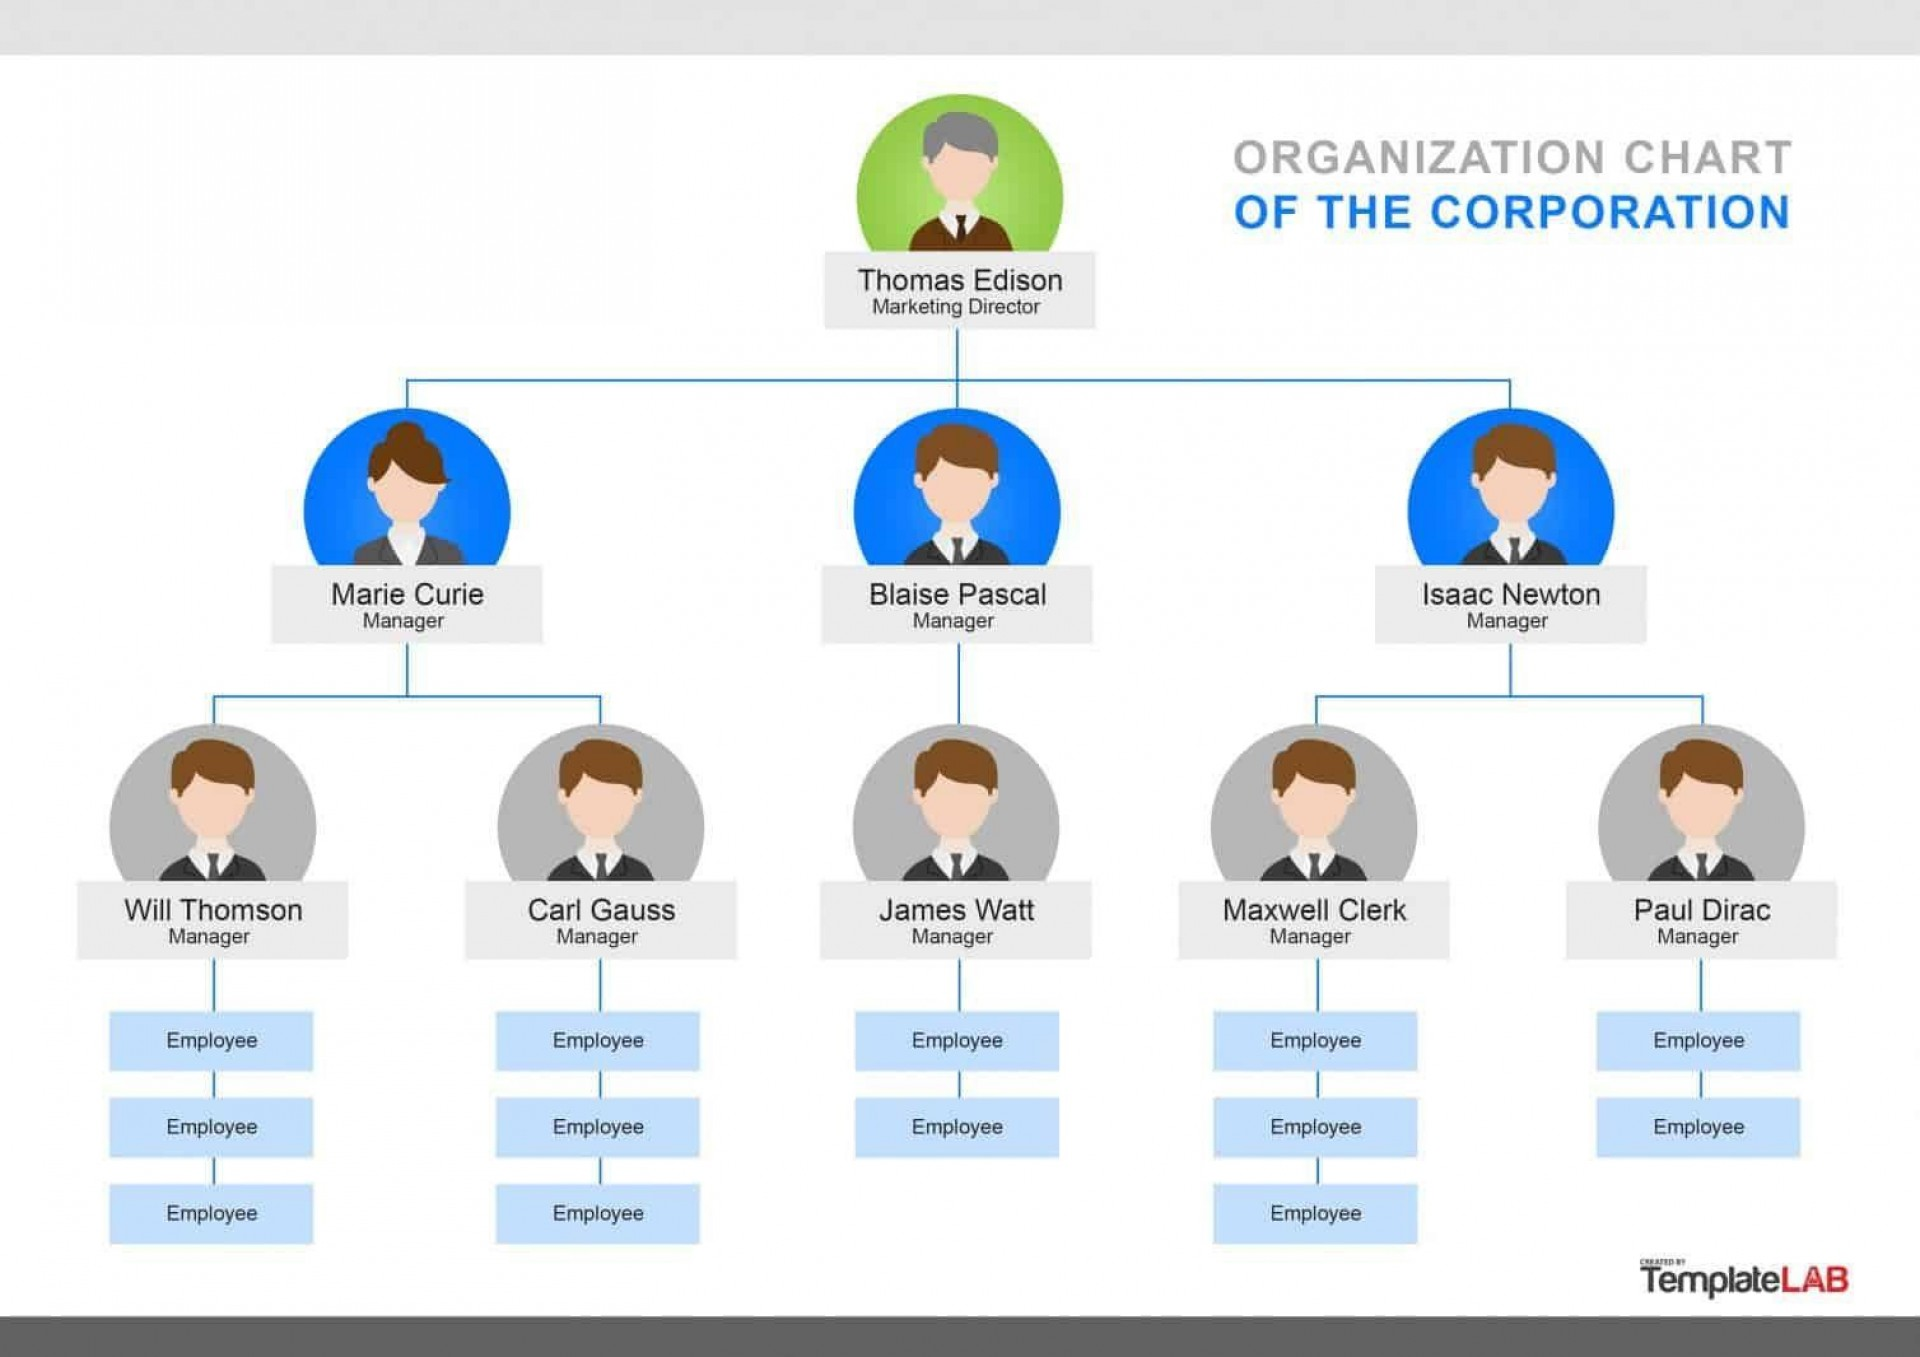 000 Marvelou M Word Org Chart Template Image  Organizational Free Download1920